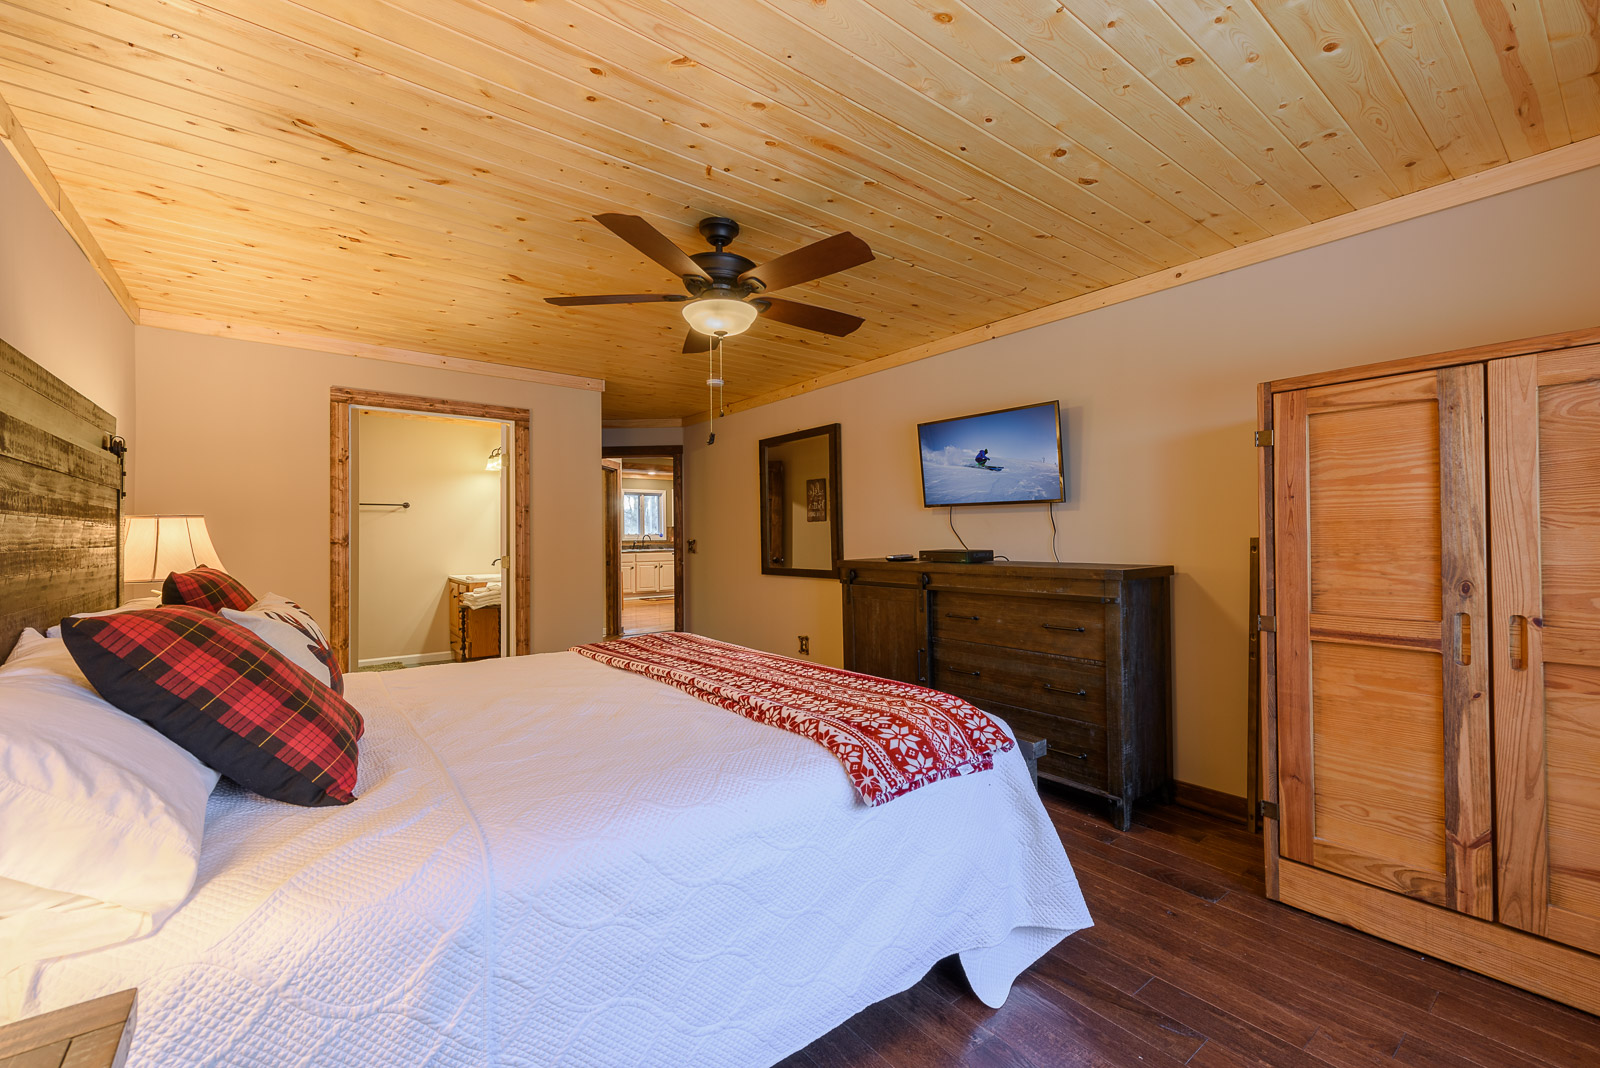 Second King Suite on Main Level with HDTV and ensuite Full Bathroom